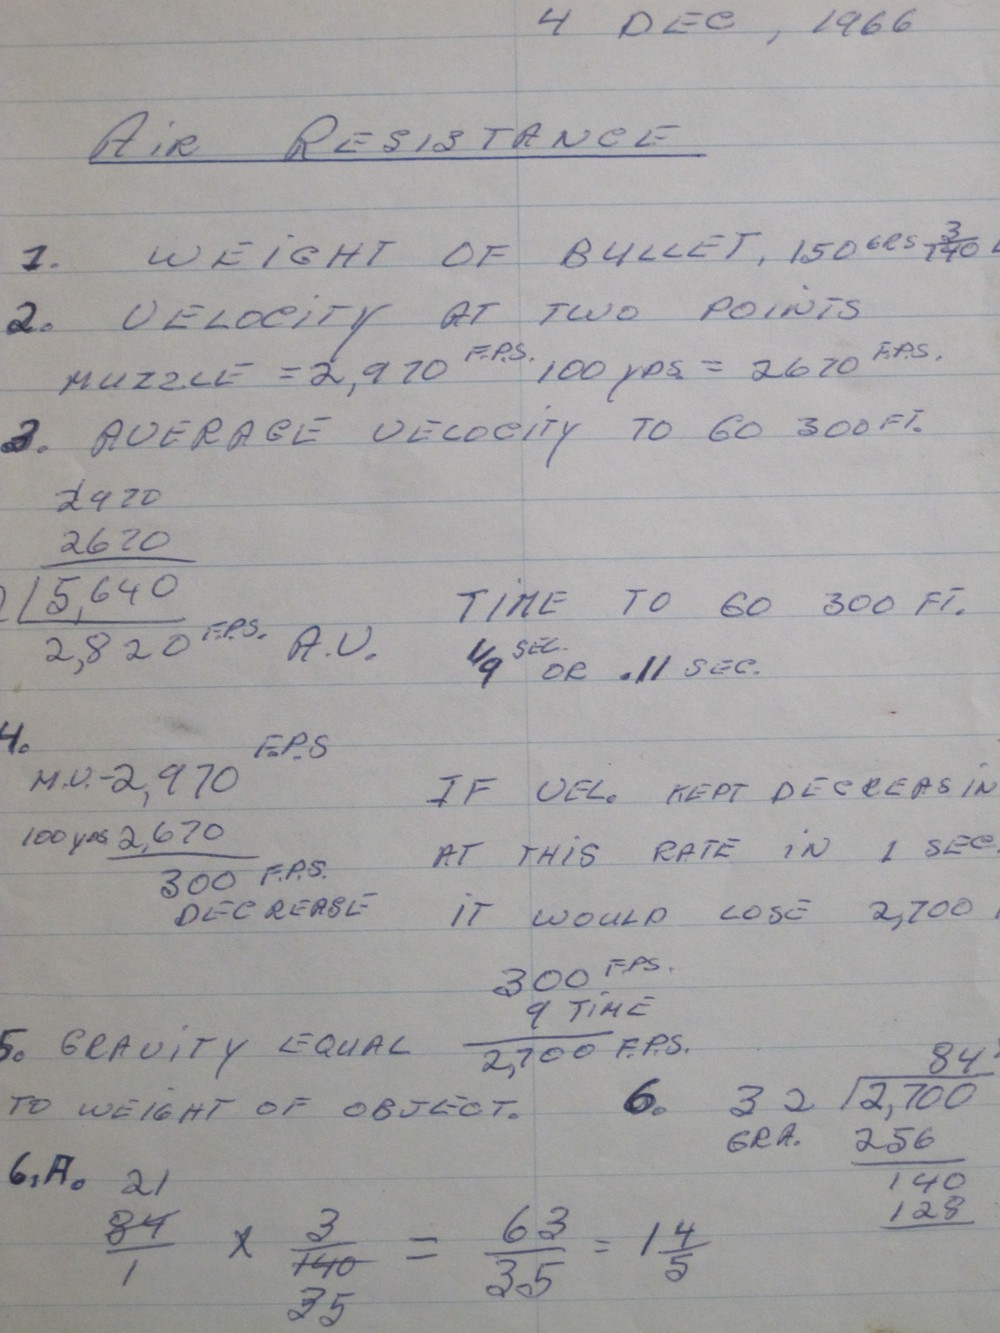 Confined to barracks December 4, 1966, the day after my first Article 15, I calculated how air resistance affects projectiles